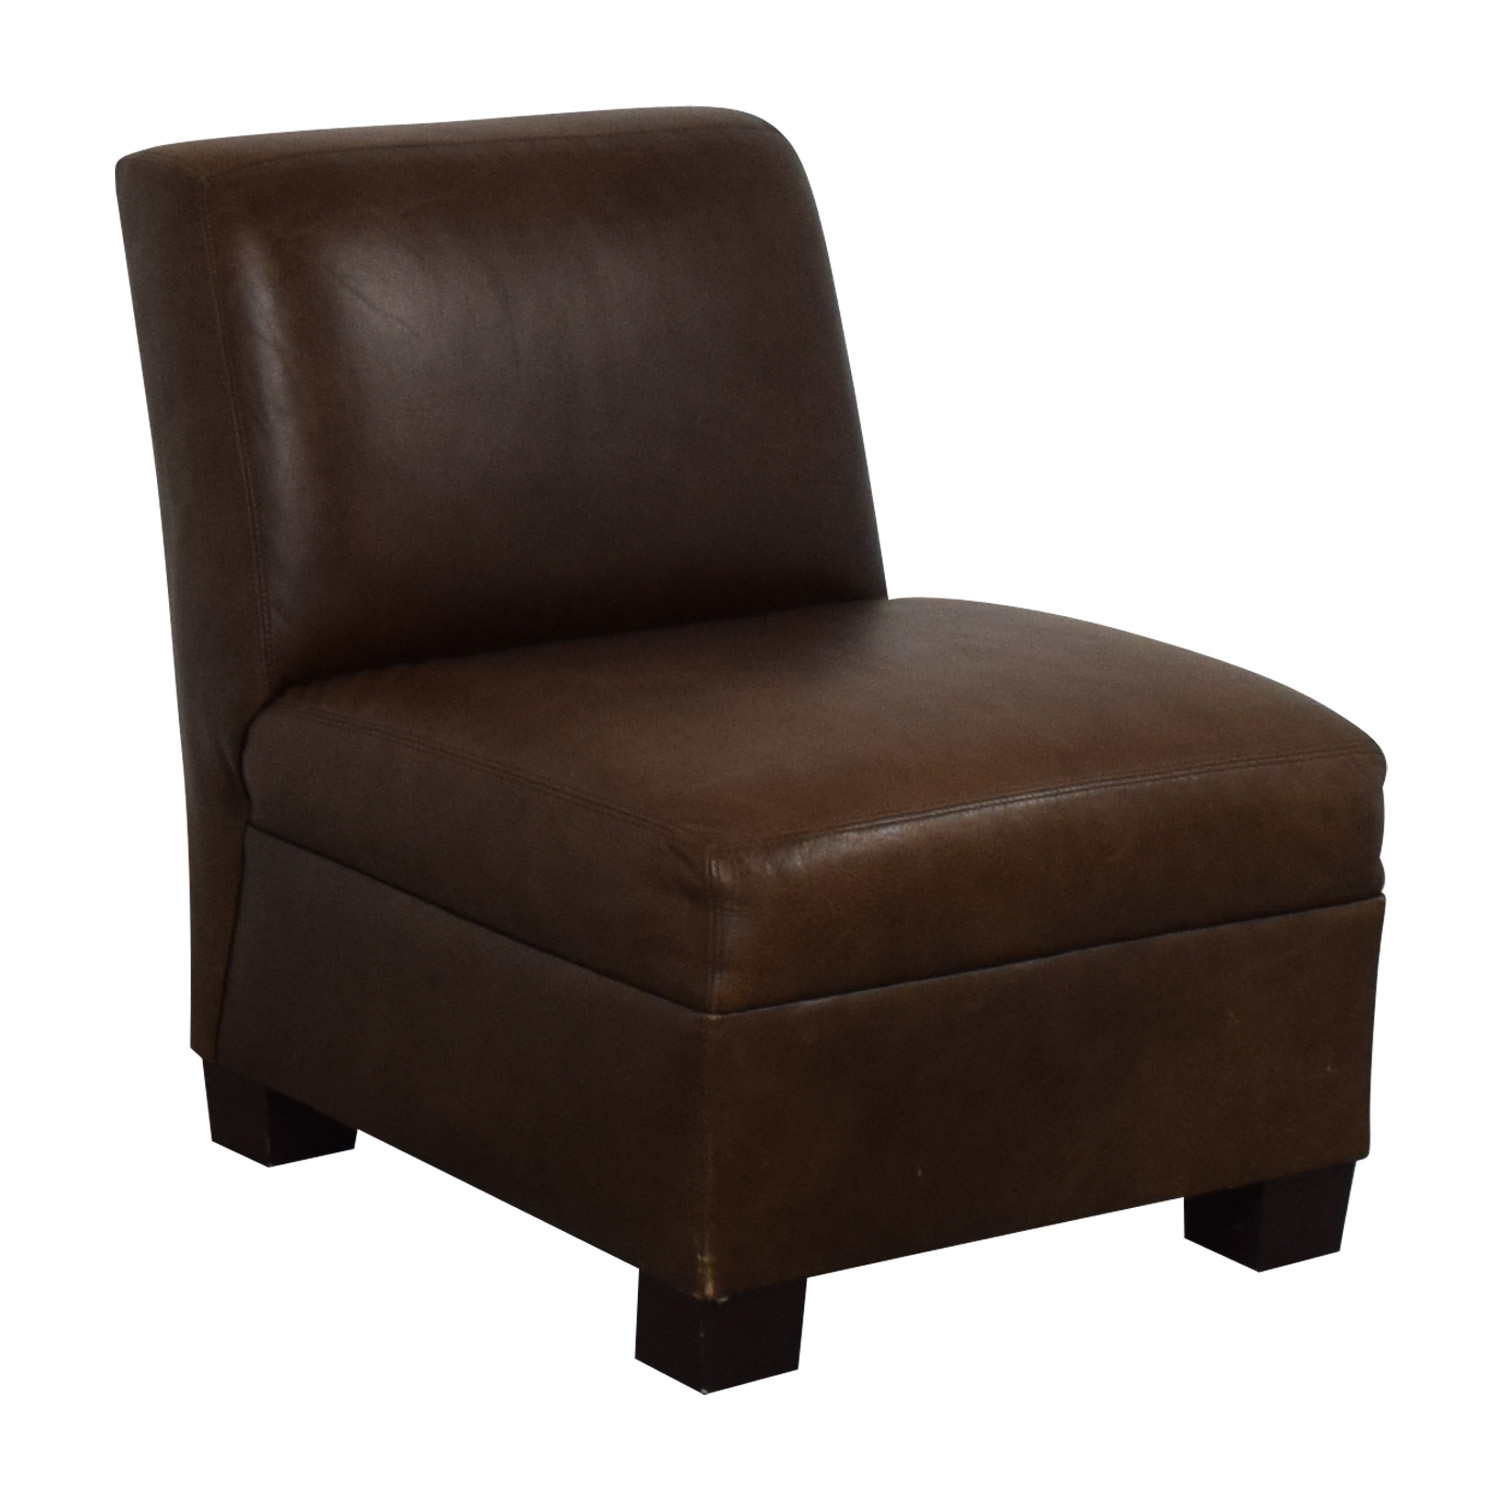 buy Pottery Barn Leather Lounge Chair Pottery Barn Accent Chairs